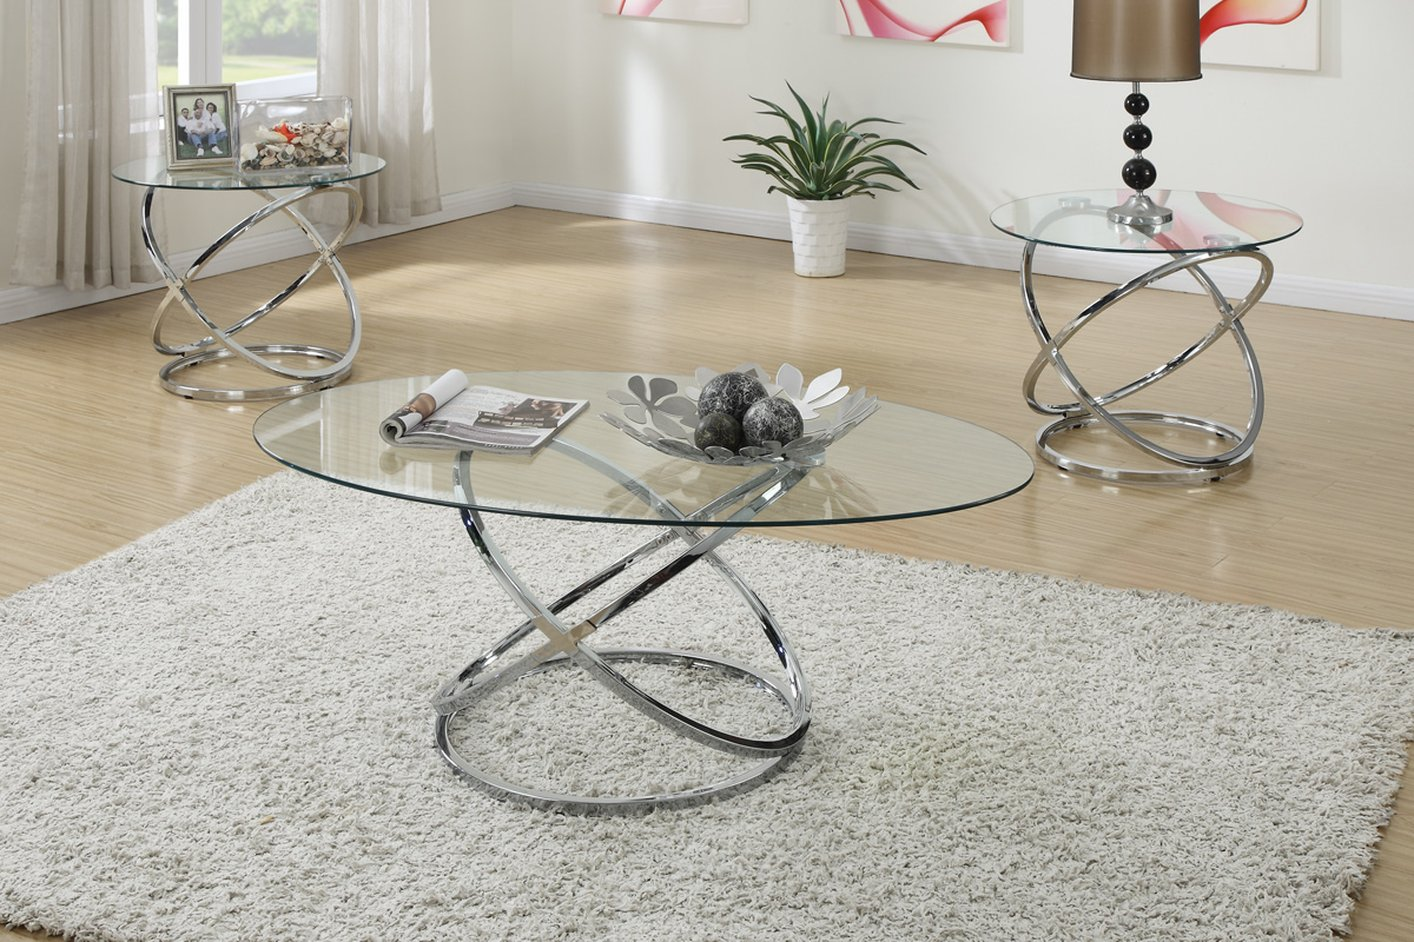 Silver Glass Coffee Table Set - Poundex F3087 Silver Glass Coffee Table Set - Steal-A-Sofa